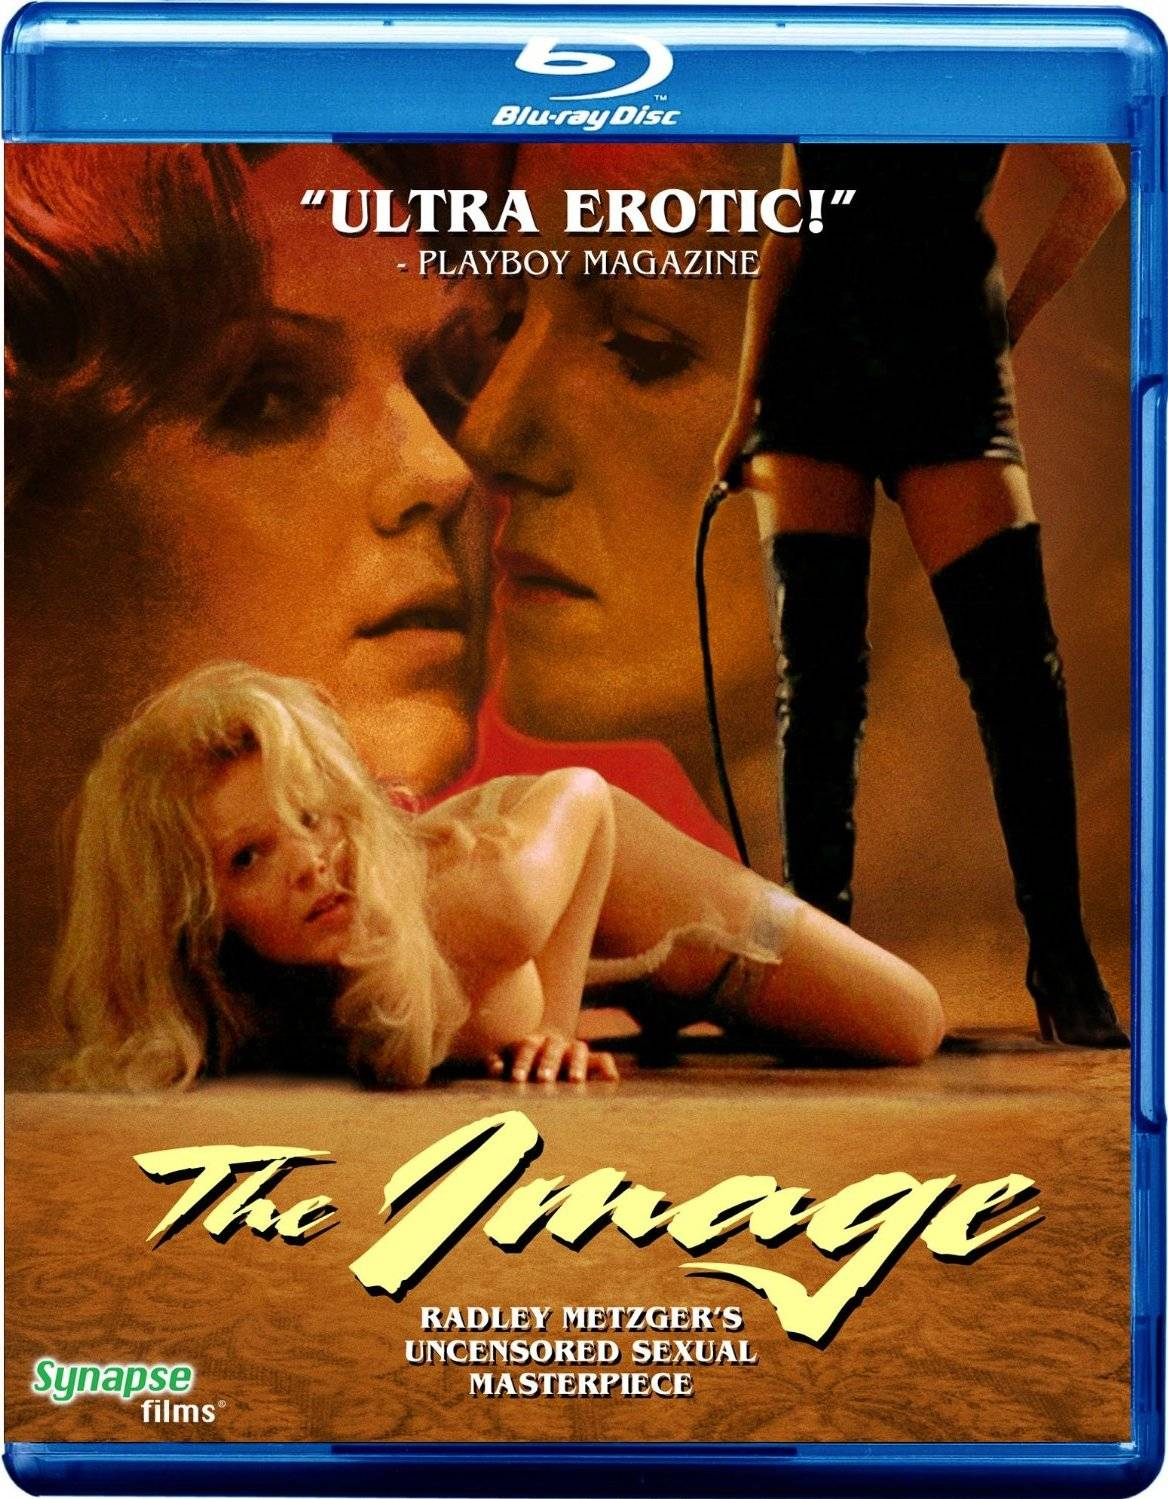 The Image (1975) The Punishment of Anne